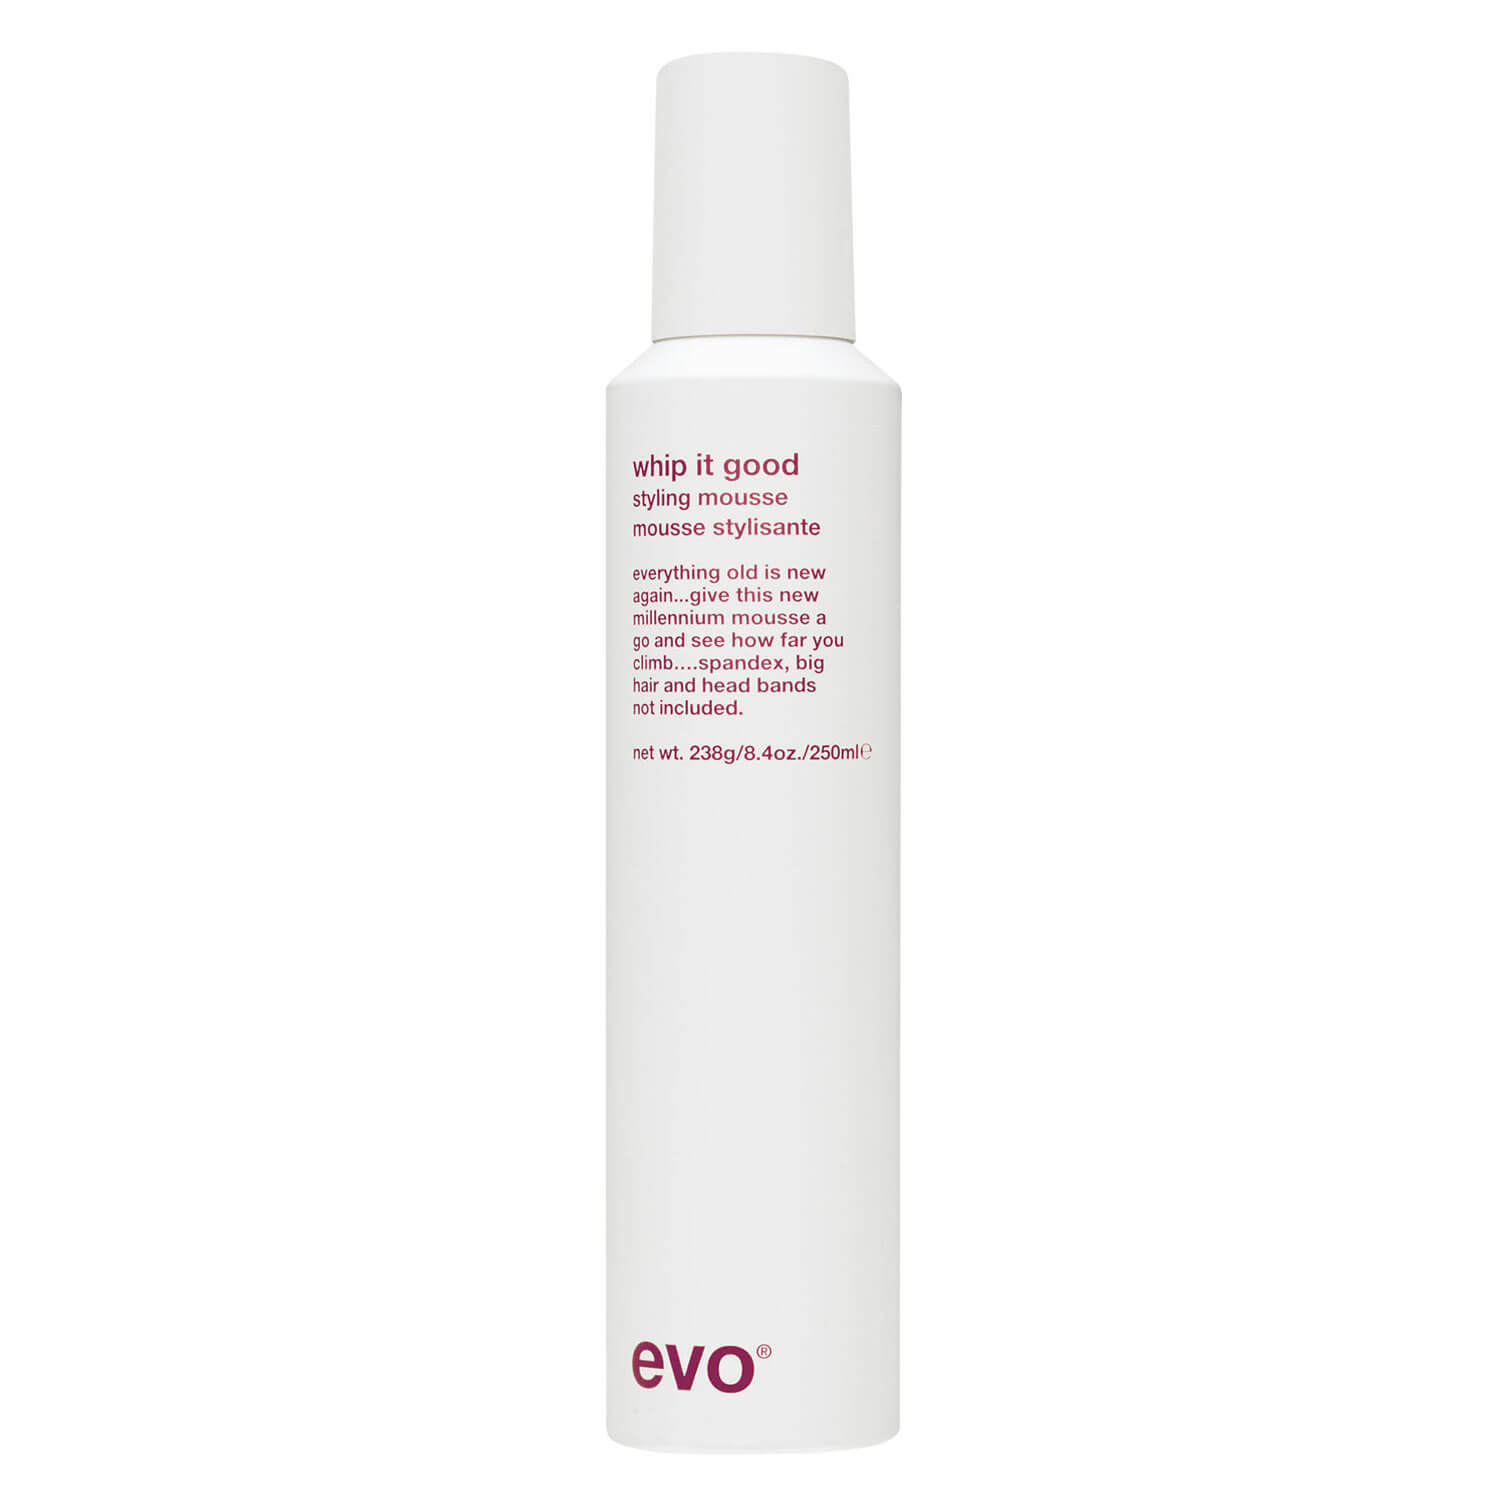 evo curl - whip it good styling mousse